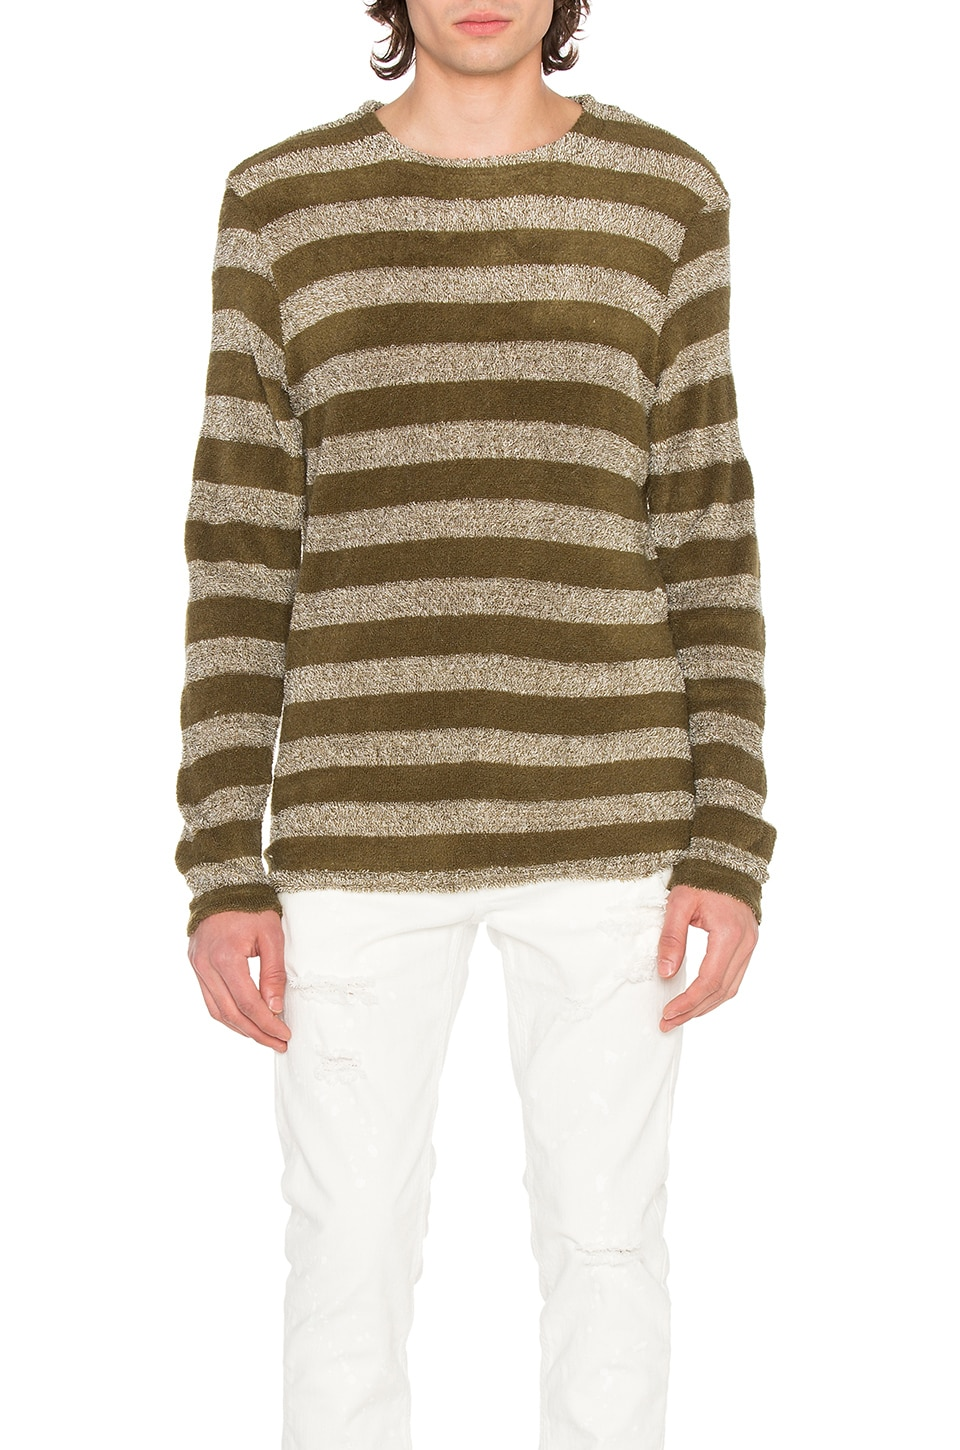 Milian Sweater by Publish